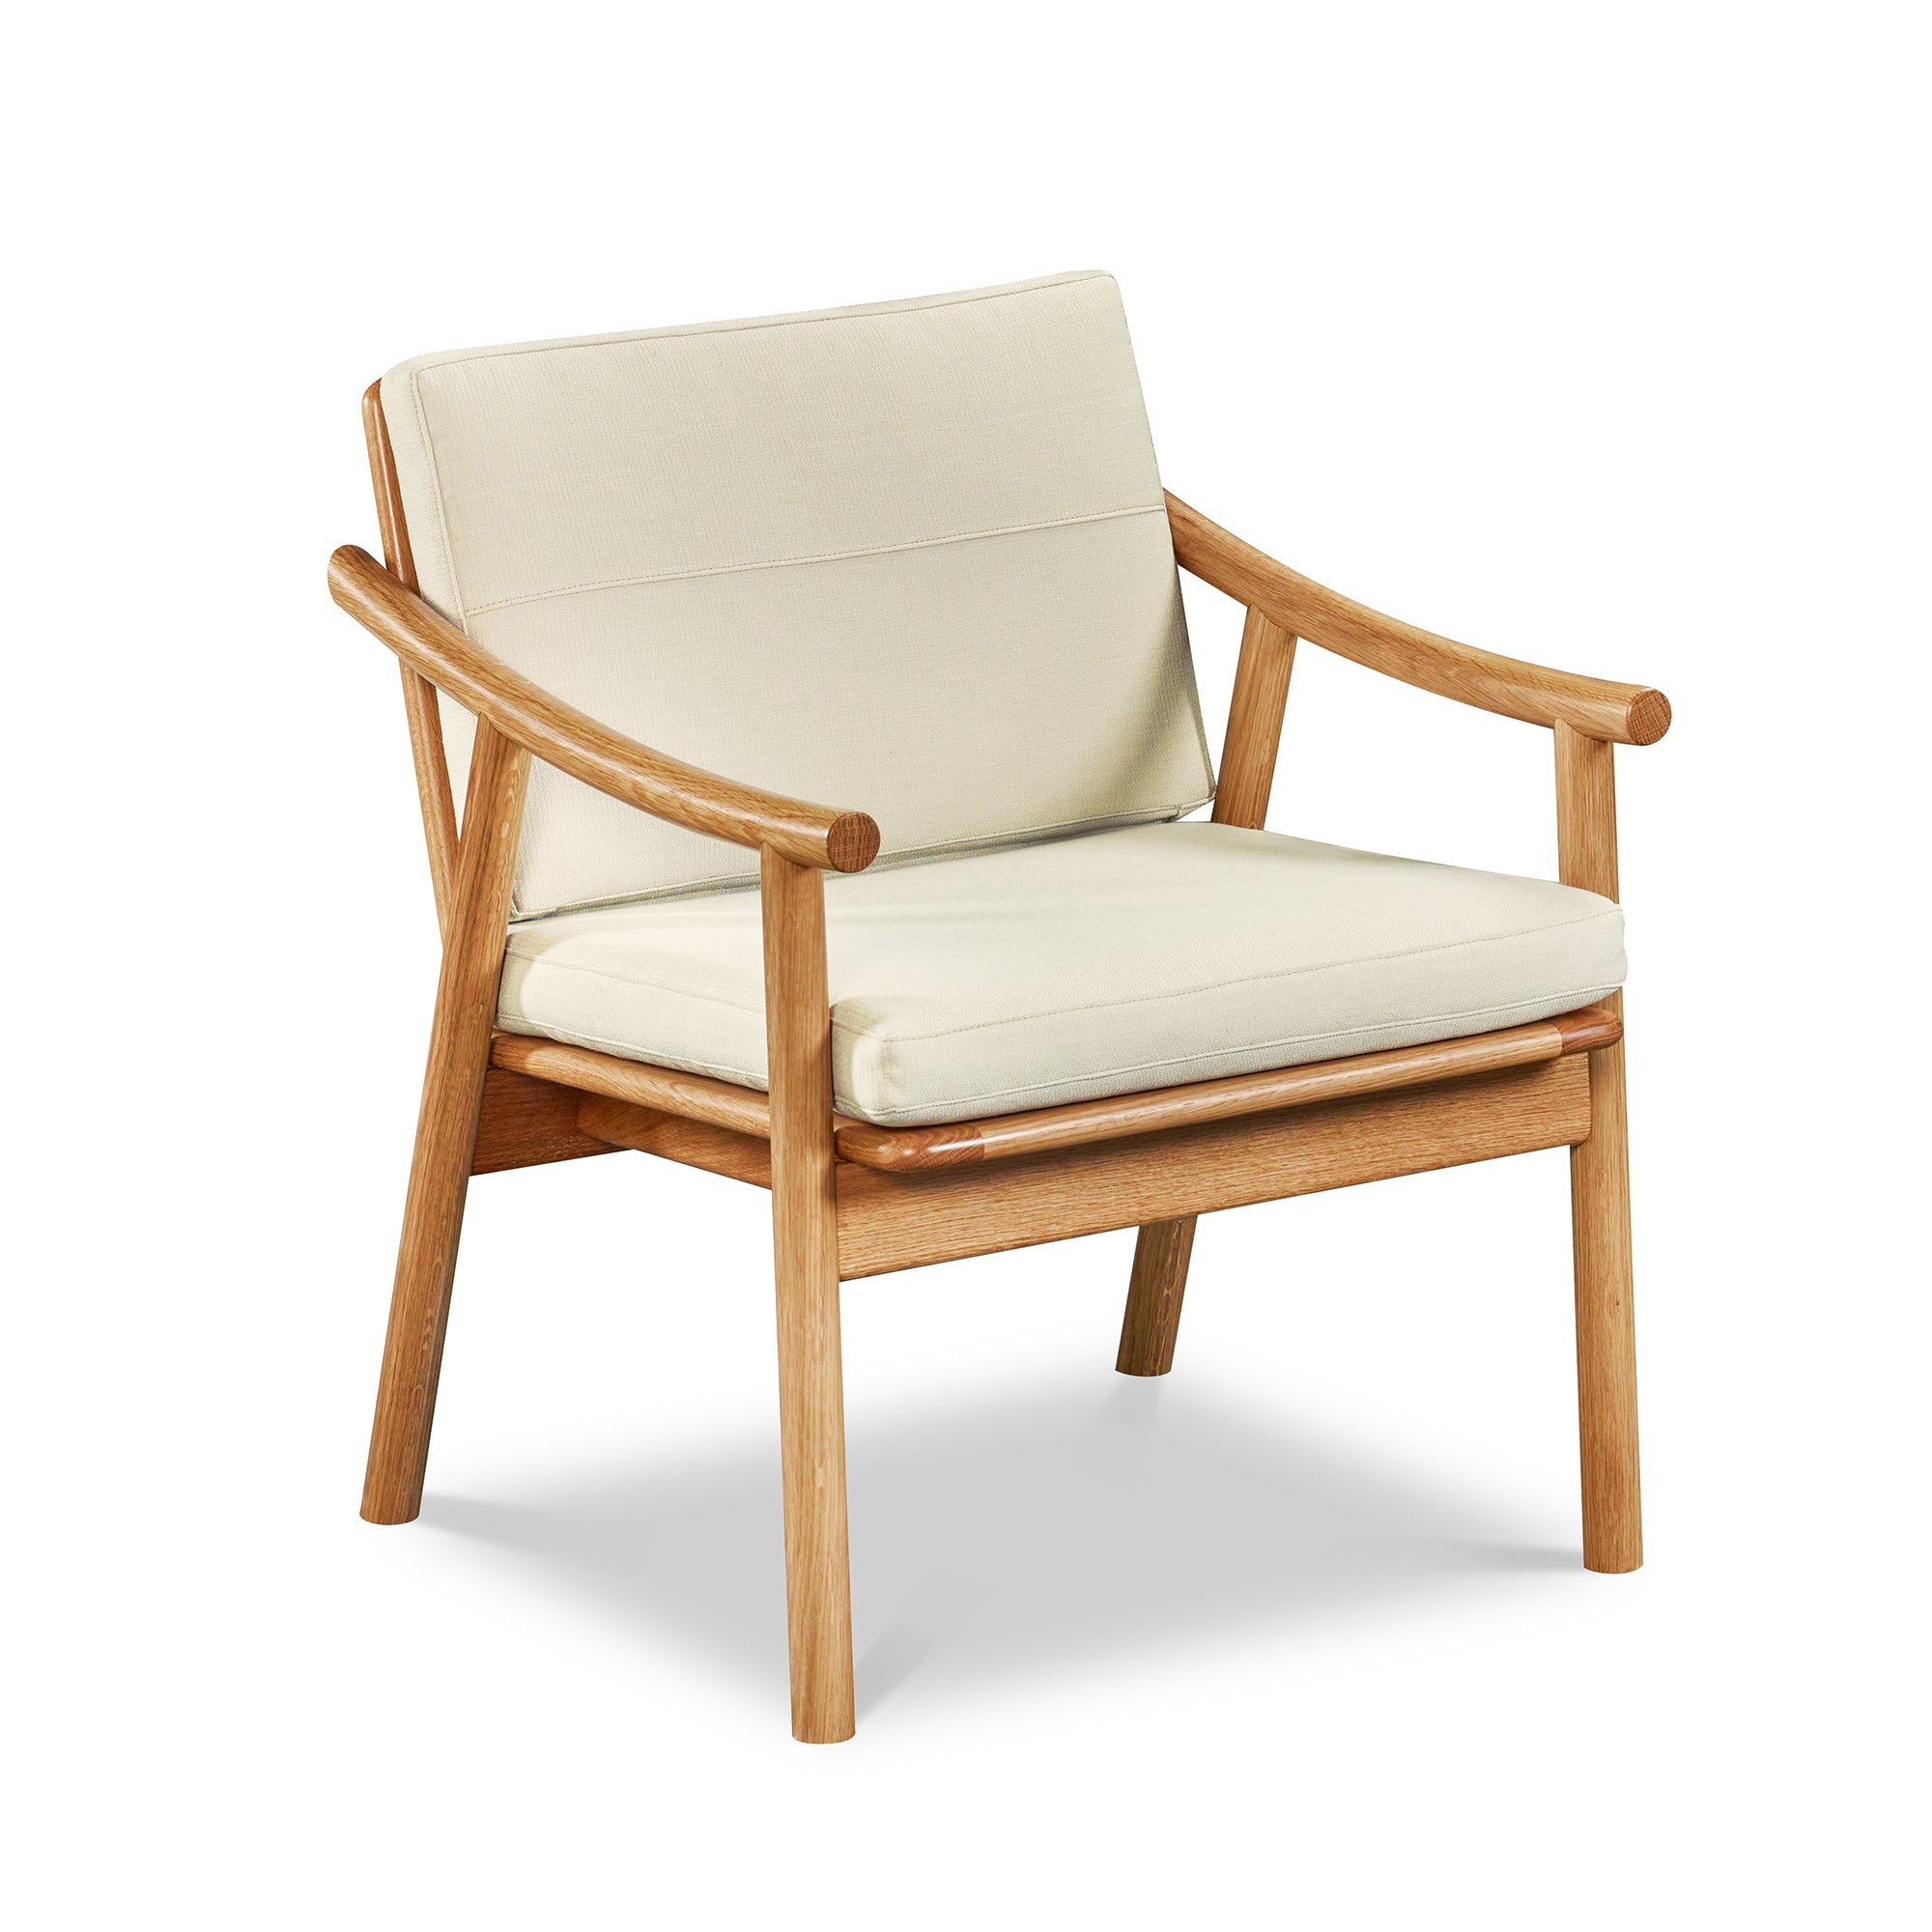 Solid white oak Scandinavian style lounge chair with Knoll fabric cushions in Buff, from Maine's Chilton Furniture Co.